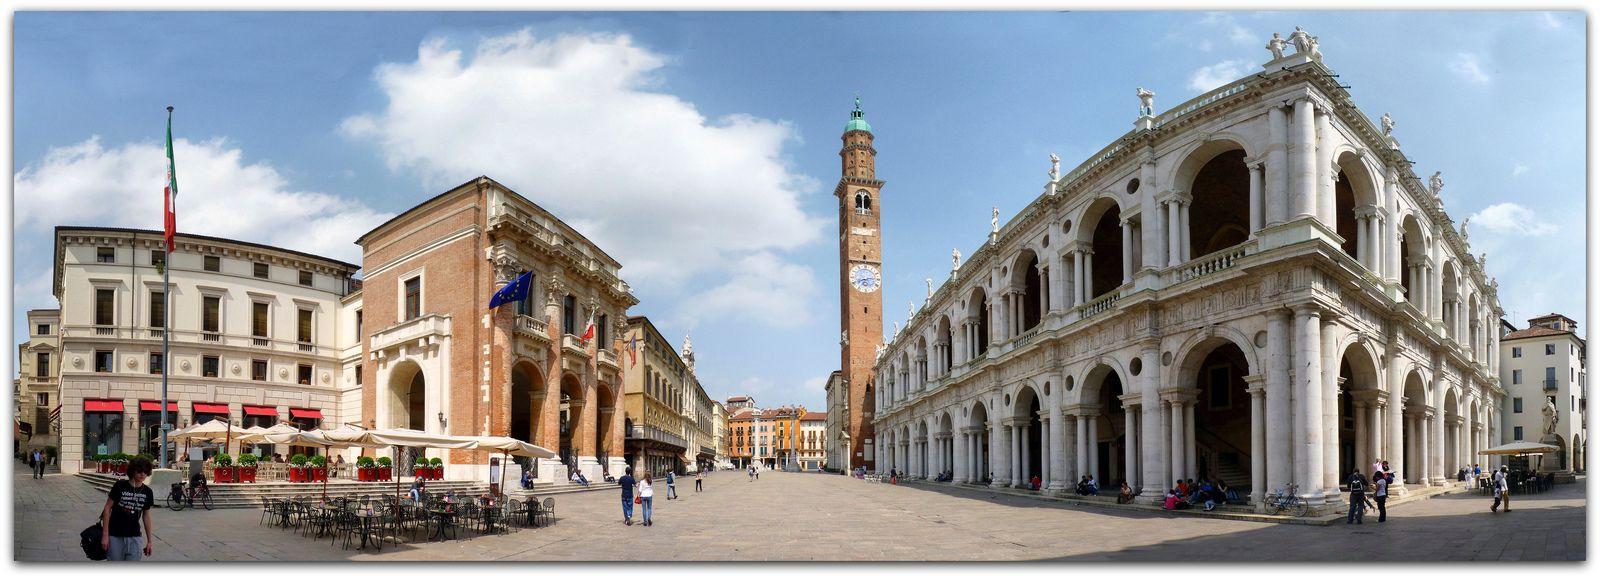 Piazza dei Signori - Vicenza | Flickr – Compartilhamento de fotos!